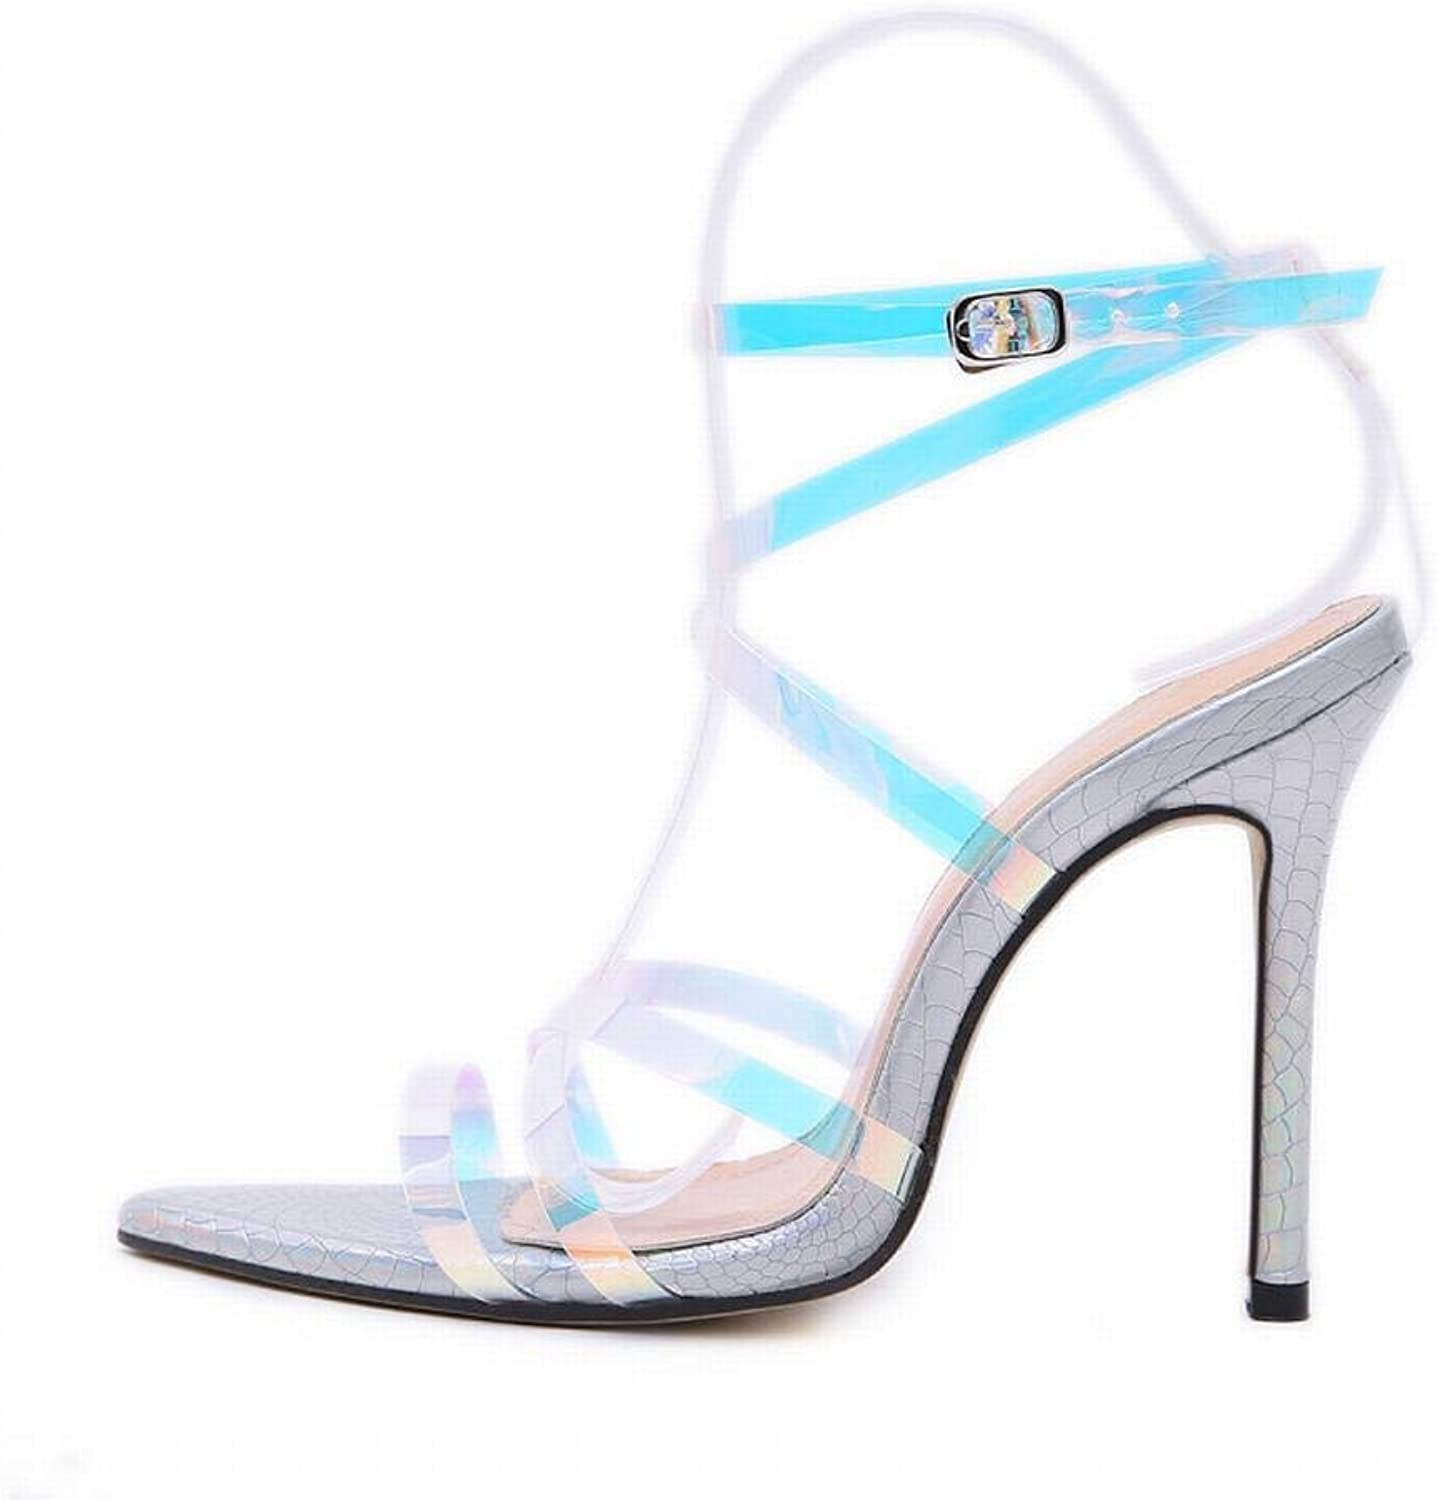 KRPENRIO Women's Sandals Summer Fish Mouth Pointed Thin Strips Bright color Stilettos